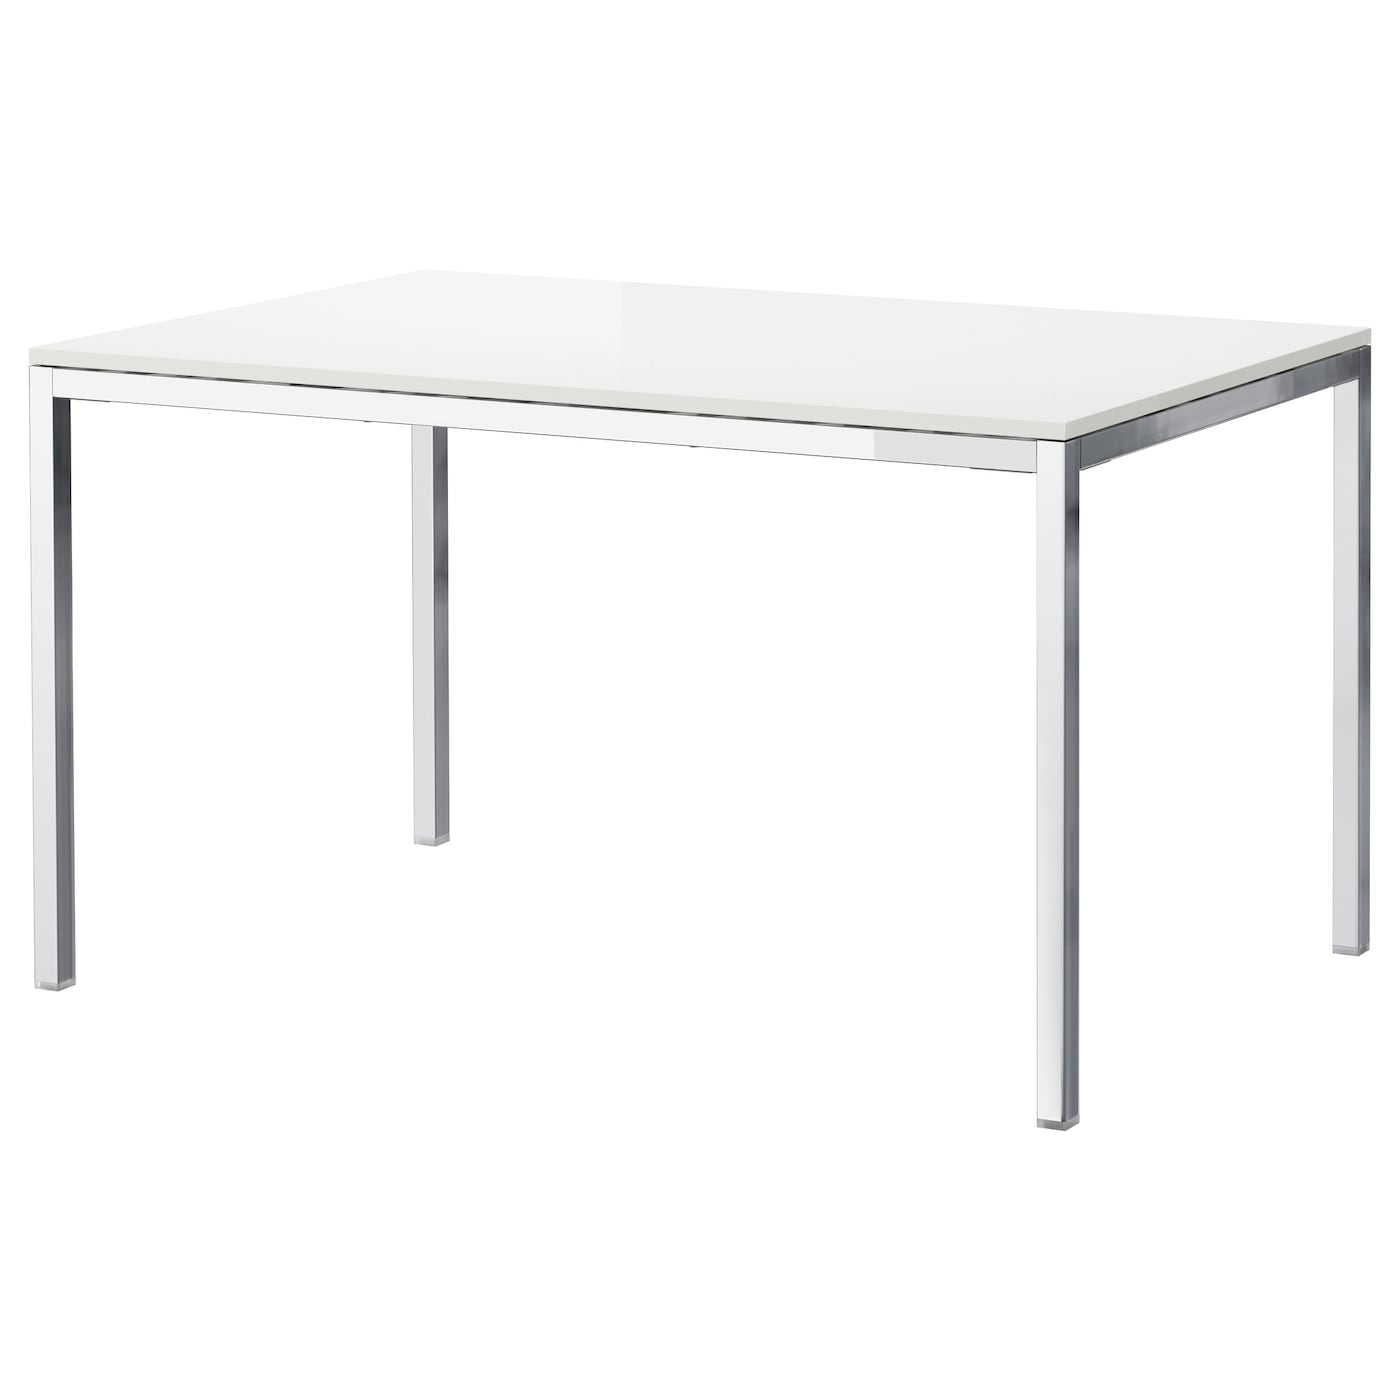 Torsby Table Chrome Plated High Gloss White 135x85 Cm Ikea